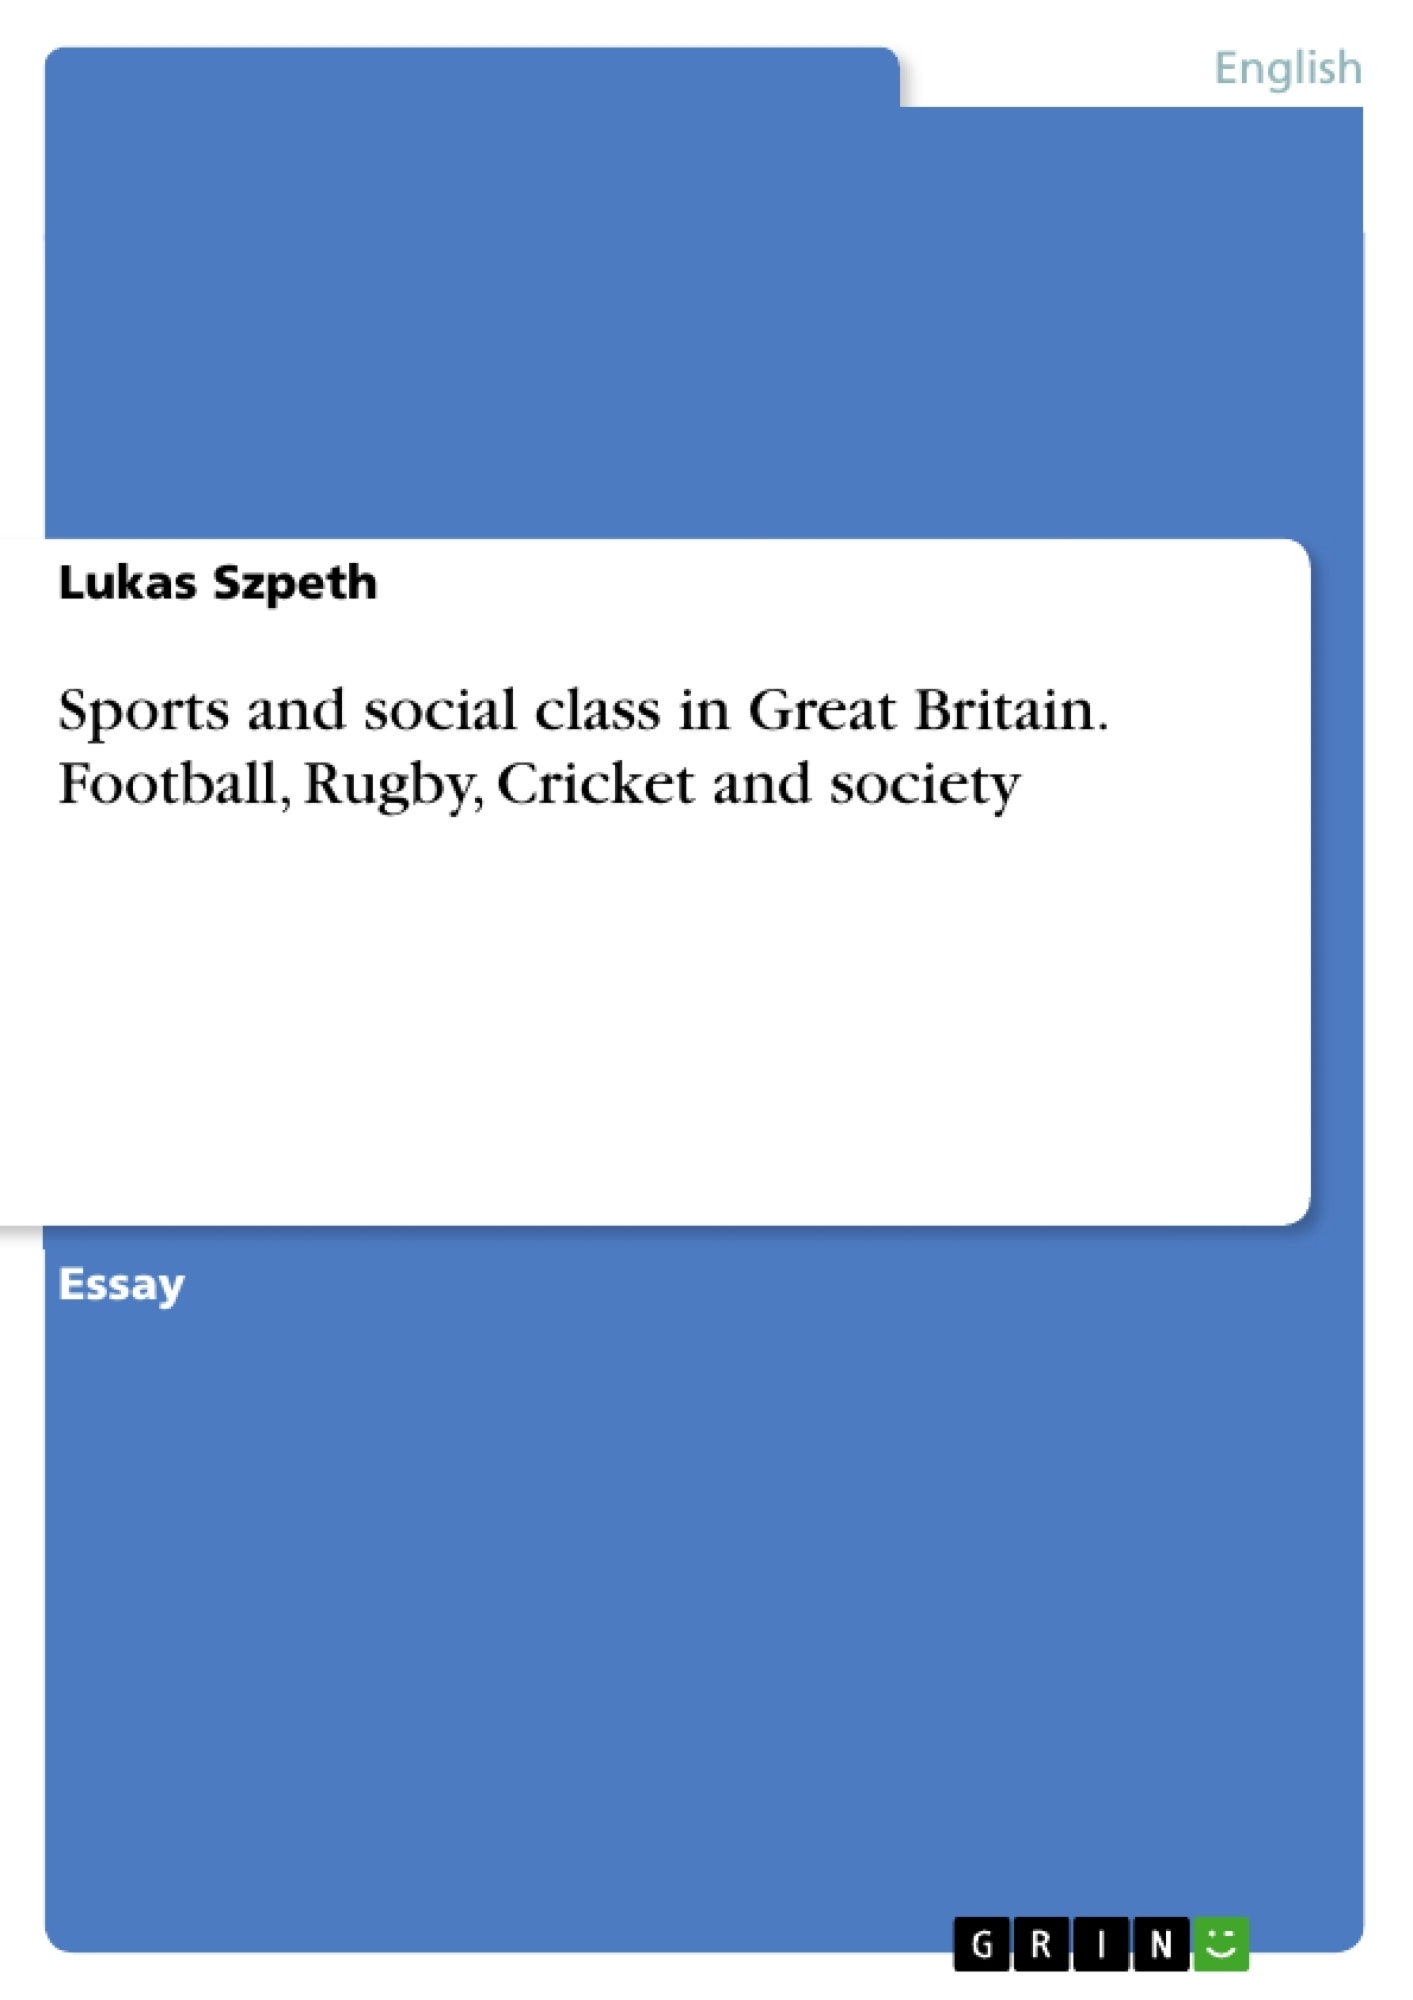 Title: Sports and social class in Great Britain. Football, Rugby, Cricket and society